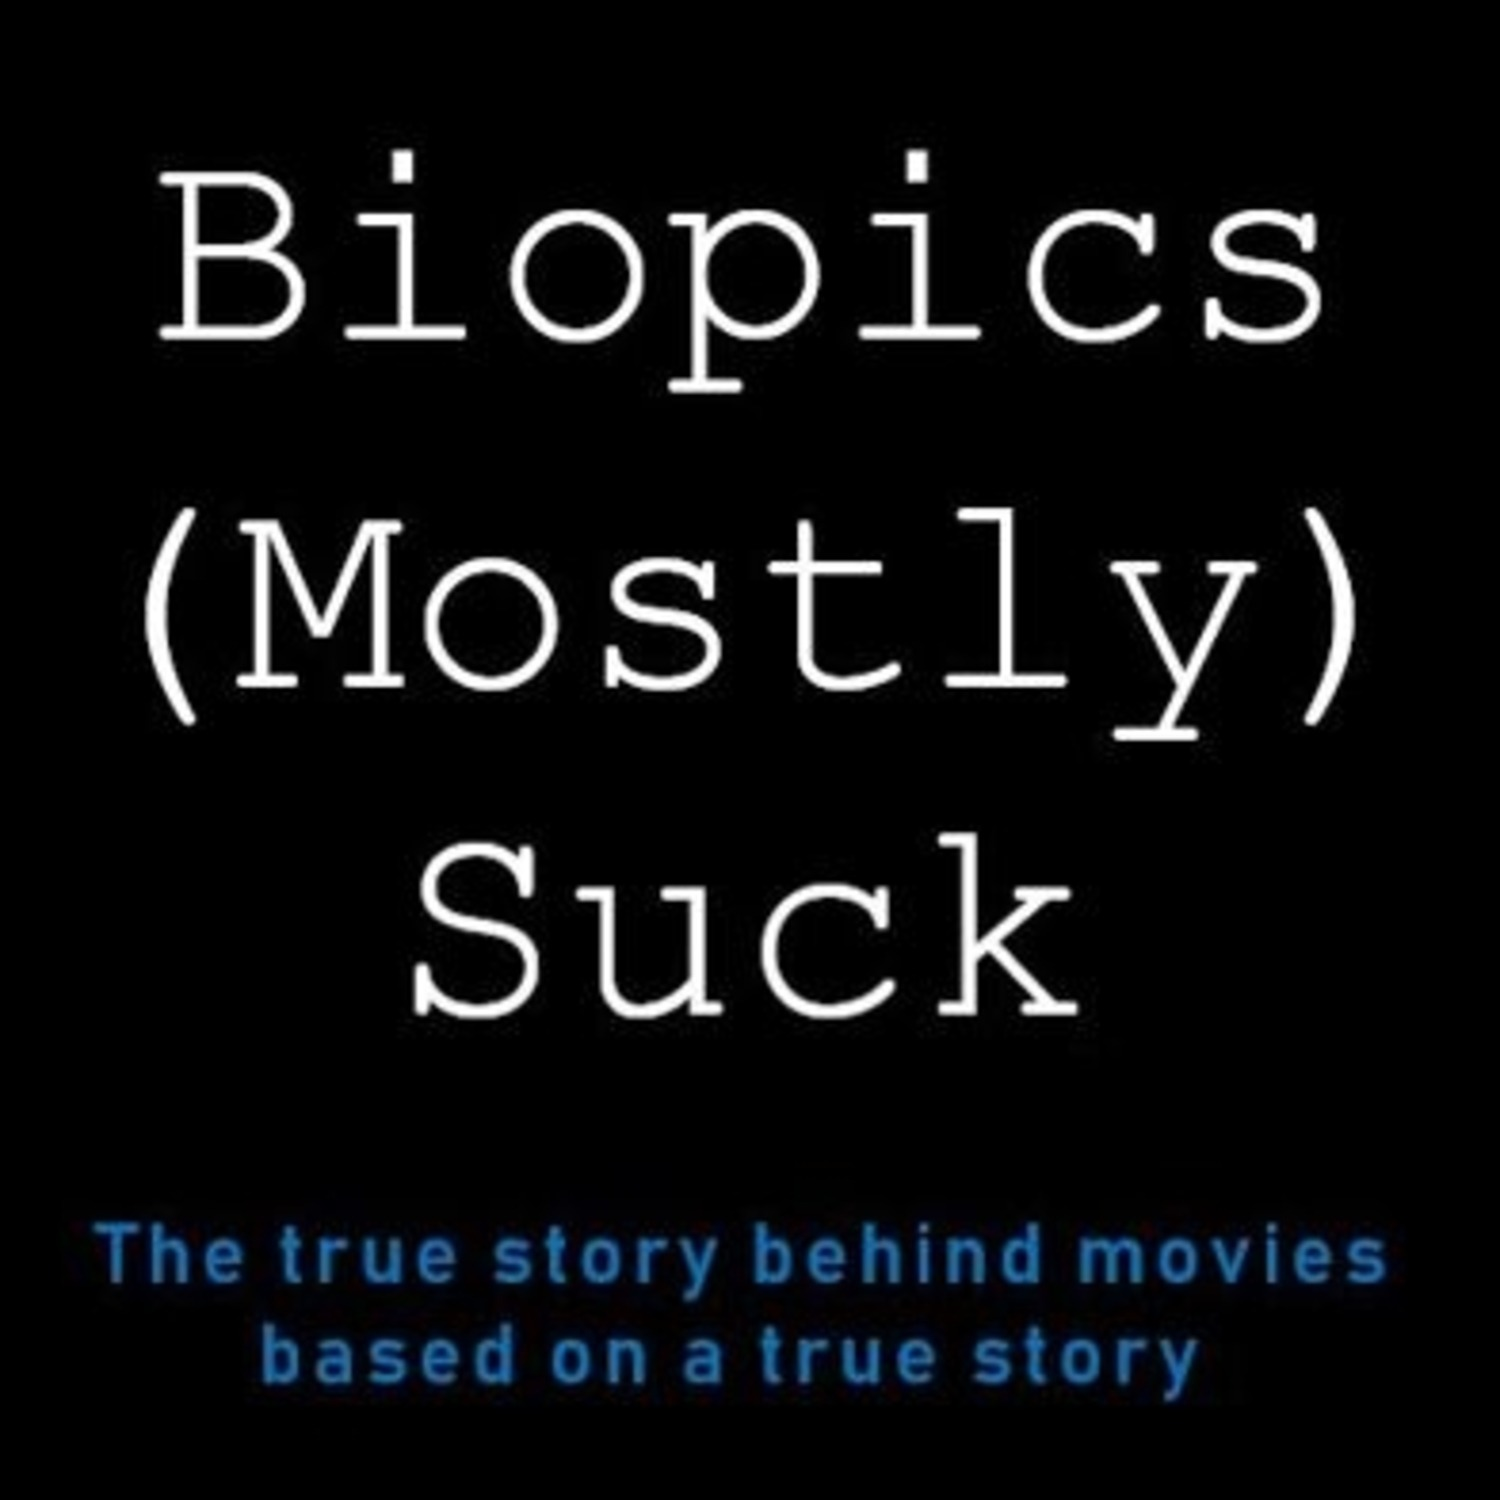 Biopics (Mostly) Suck - Howl - Episode 16 - Part Two